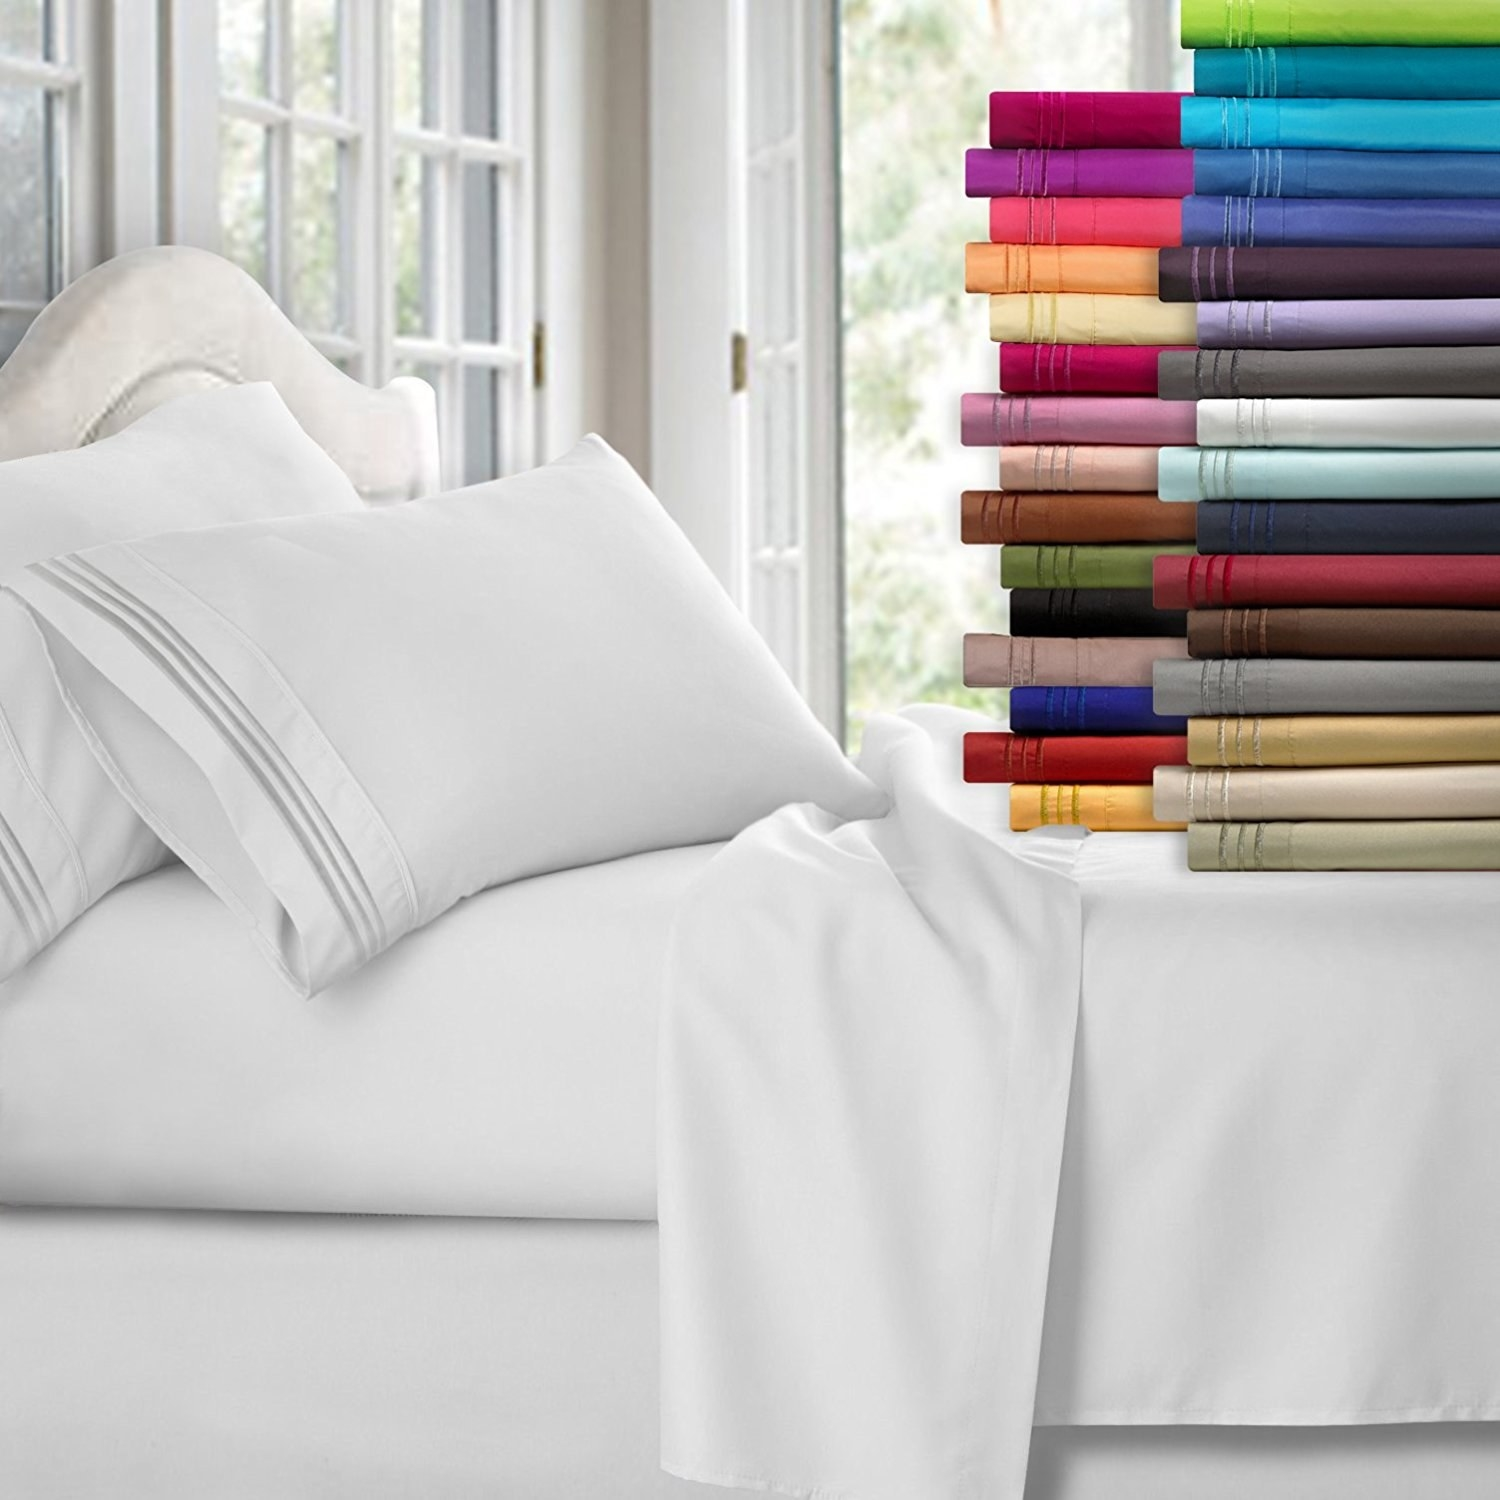 Land Of Beds Reviews 24 Of The Best Places To Buy Sheets Online